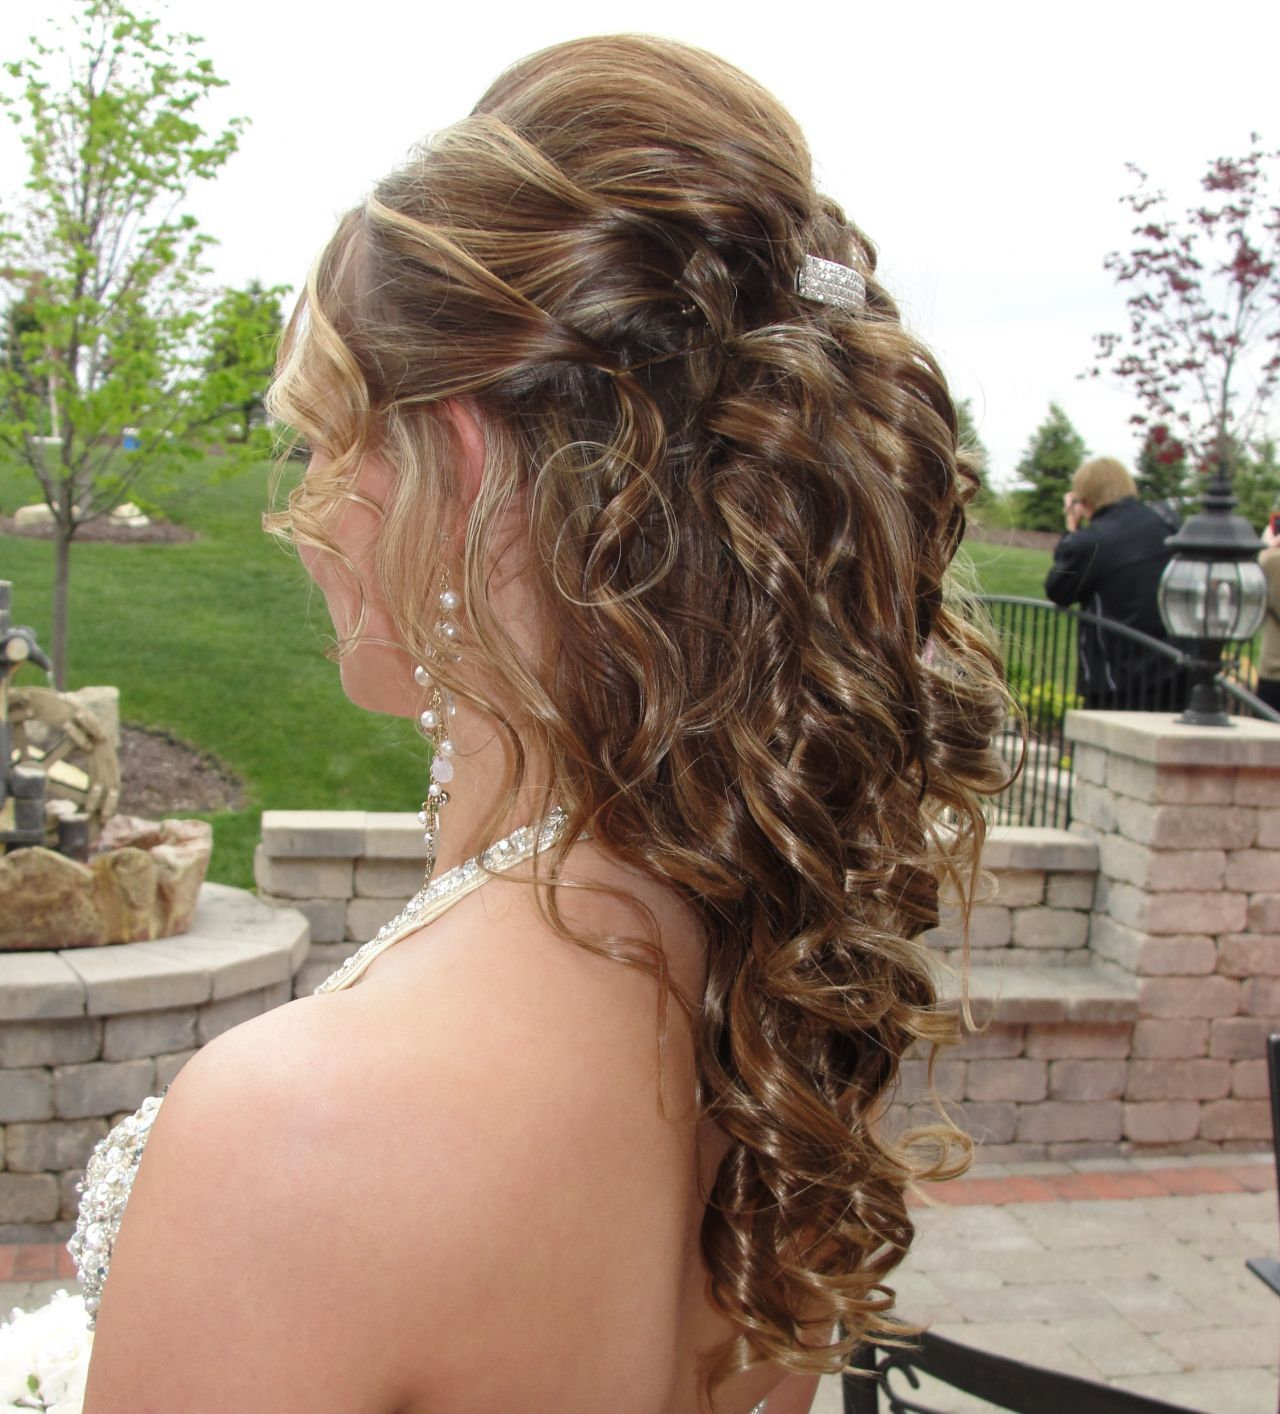 Curly Hair Down Hairstyles quick hairstyle ideas